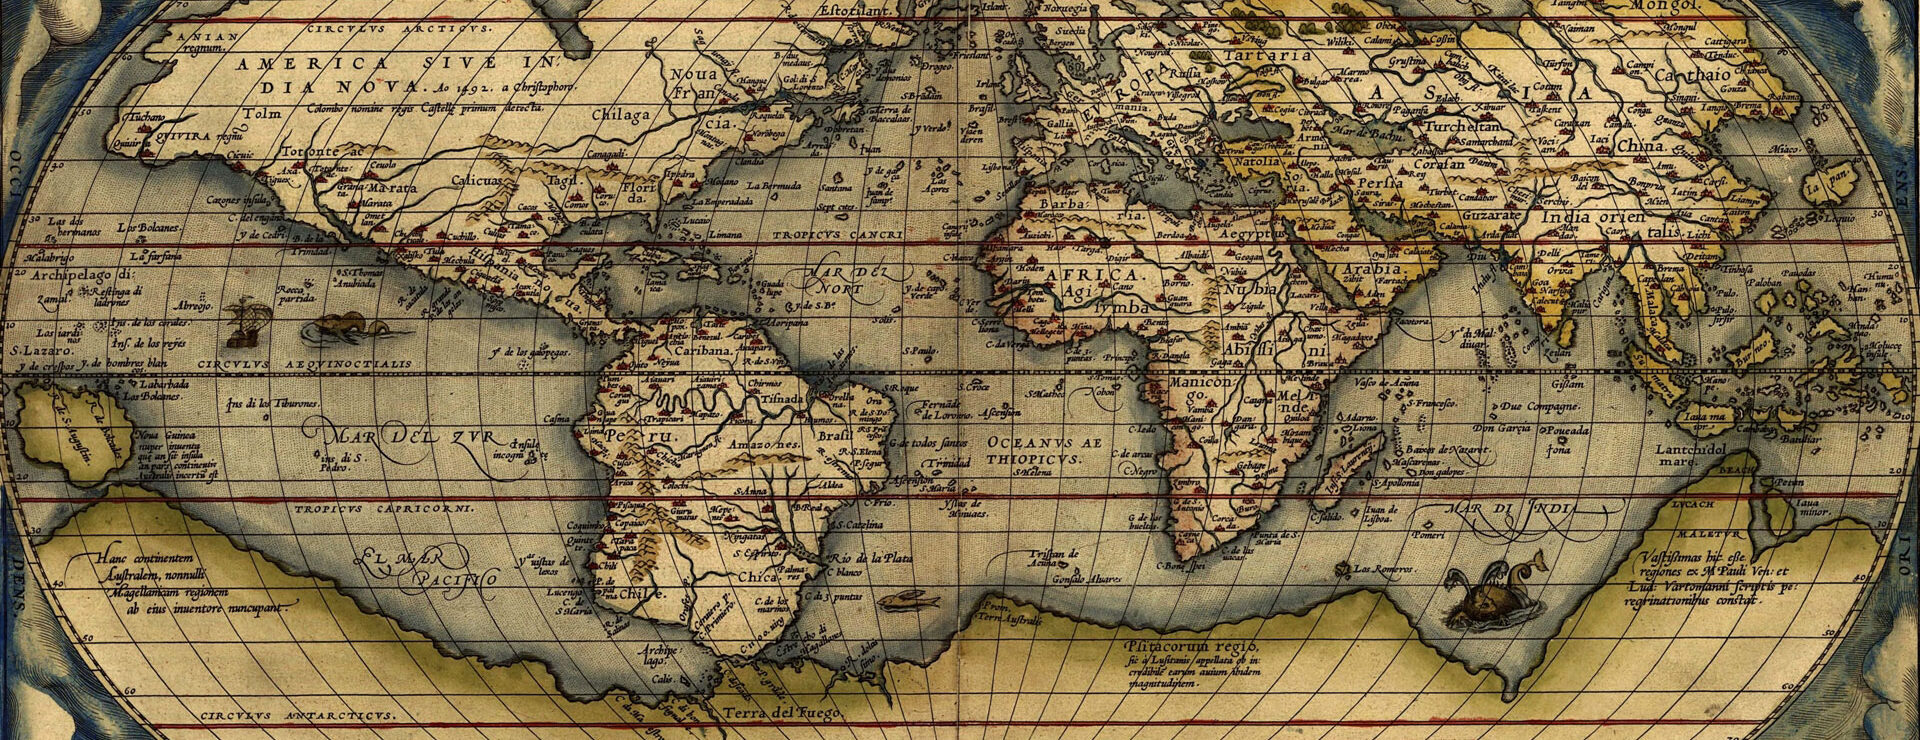 When people still believed in sea dragons and the concept of travelling to distant exotic places had a mysterious and adventurous allure... Theatrum Orbis Terrarum, by Dutchman Abraham Ortelius, is regarded as the first modern atlas, and this is his depiction of the world (1570 CE).